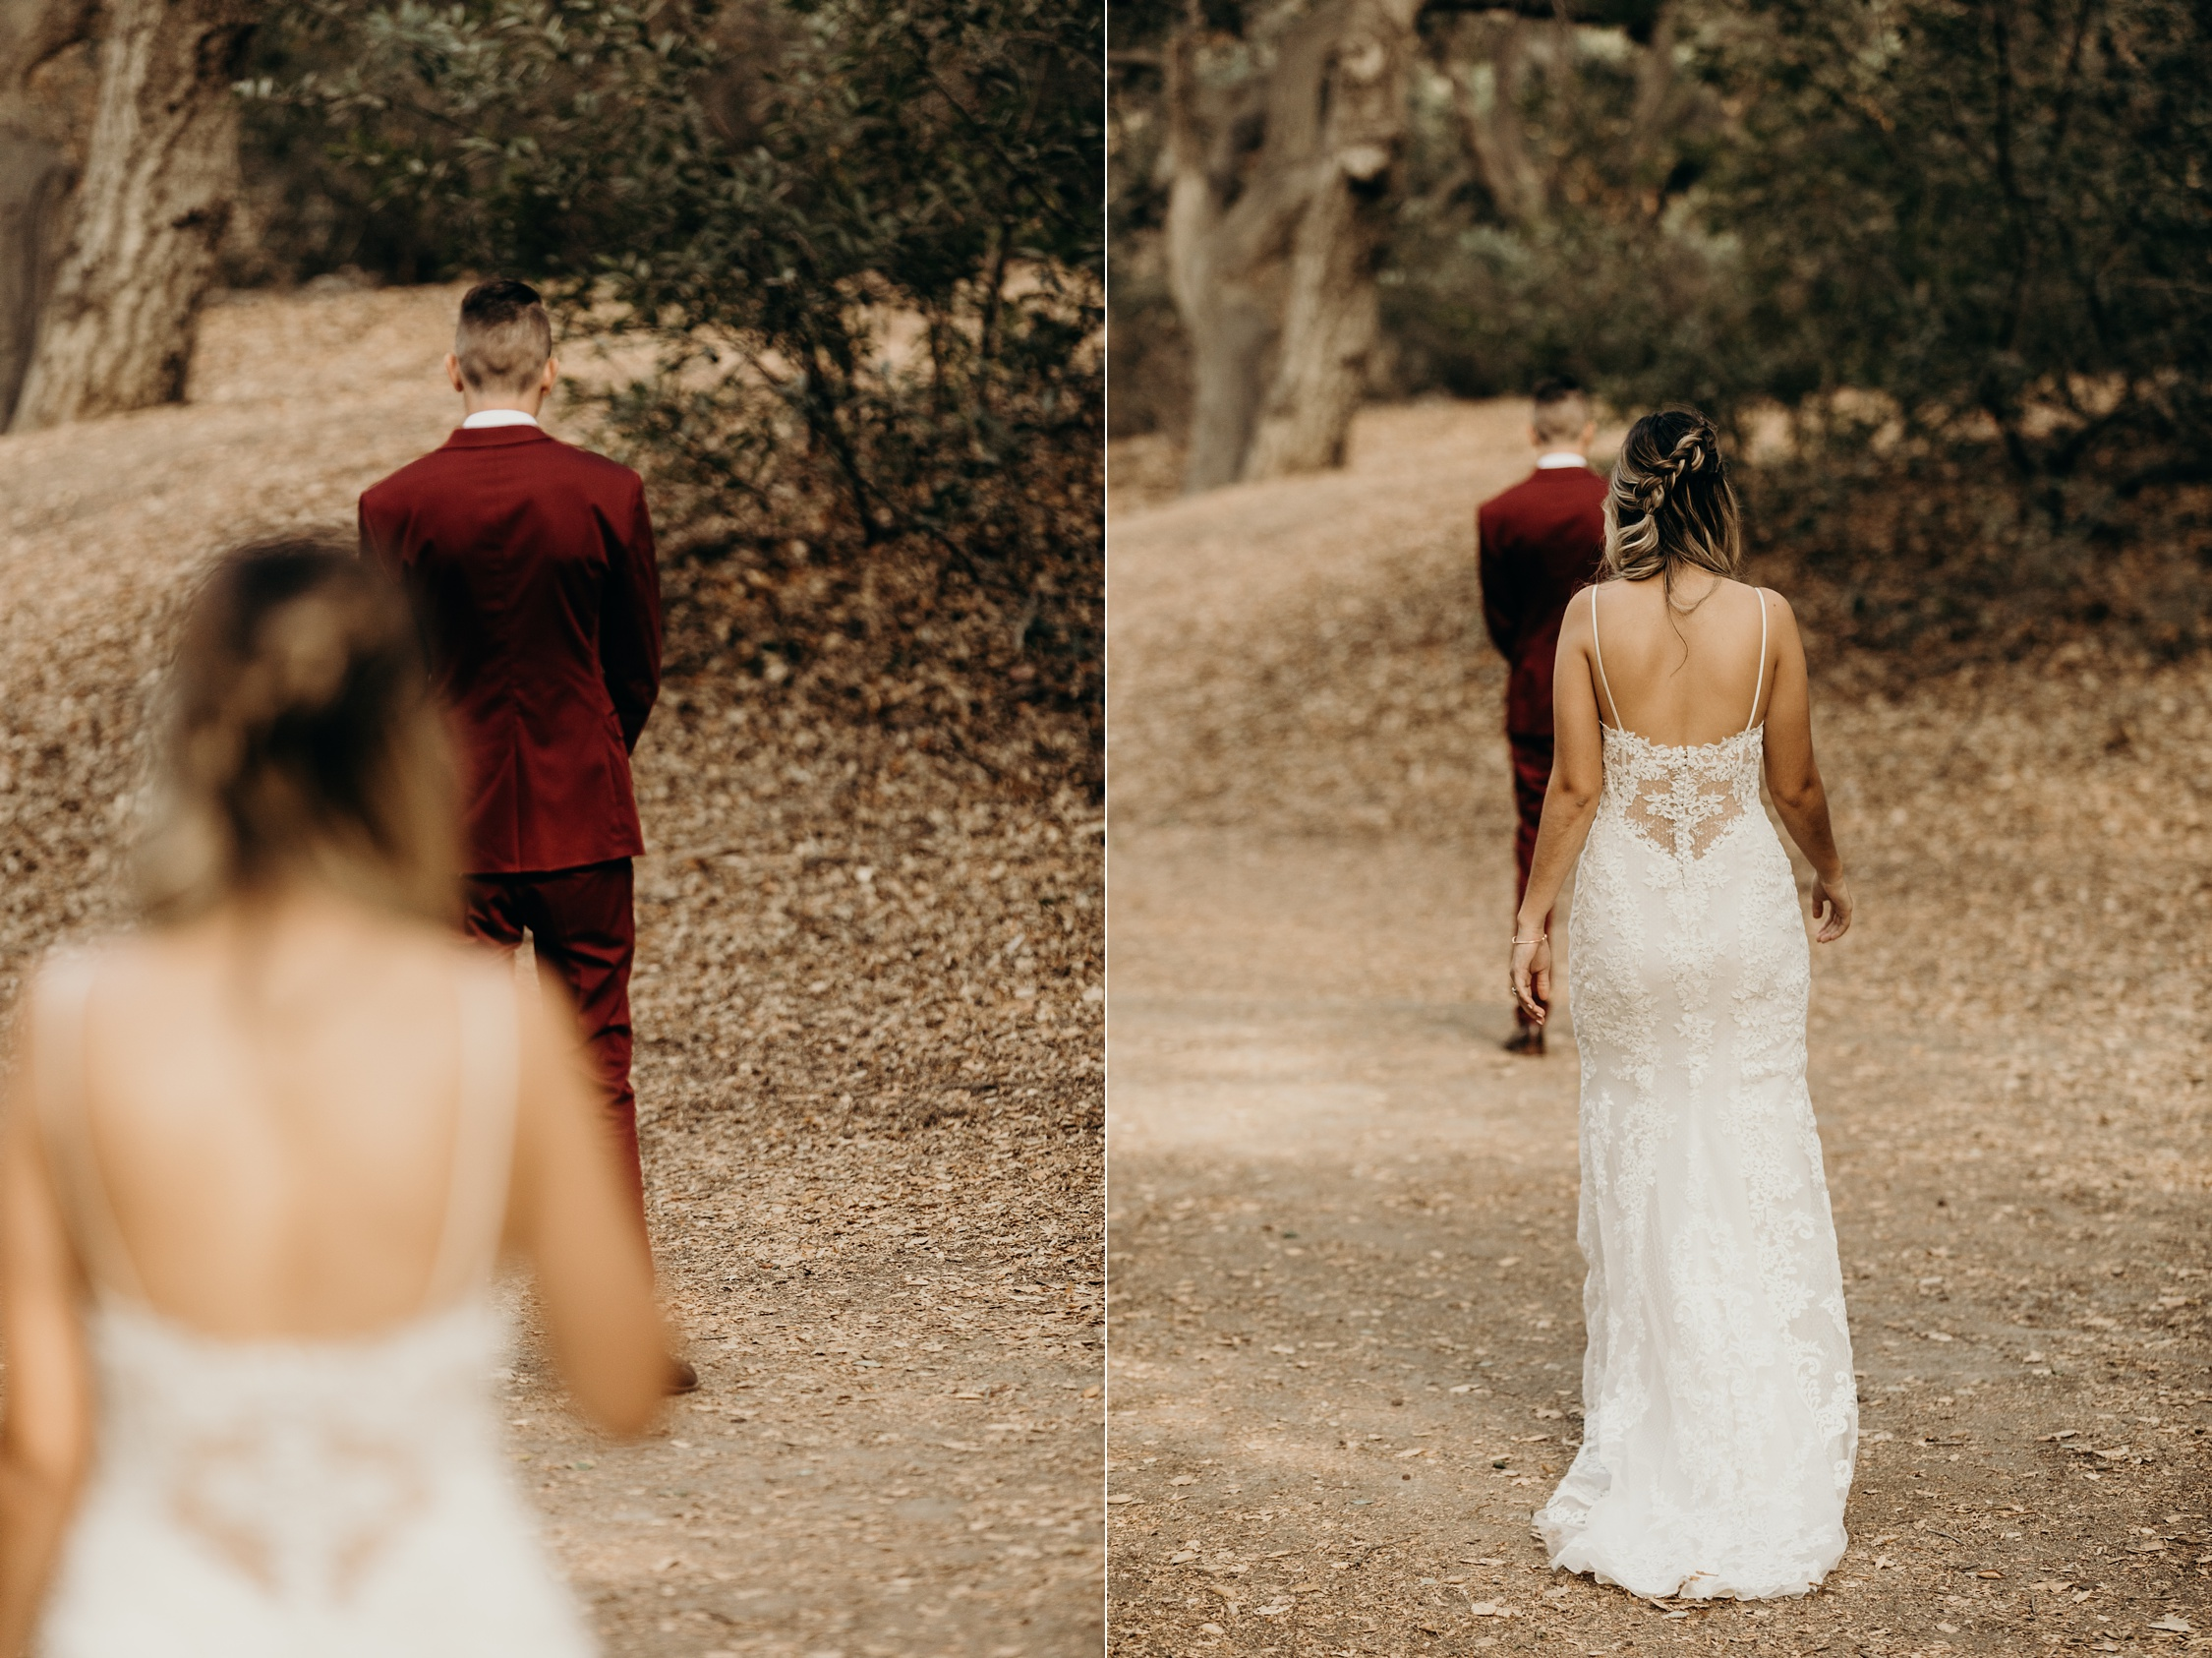 California-Wedding-Photographer-Keani-Bakula_0027.jpg